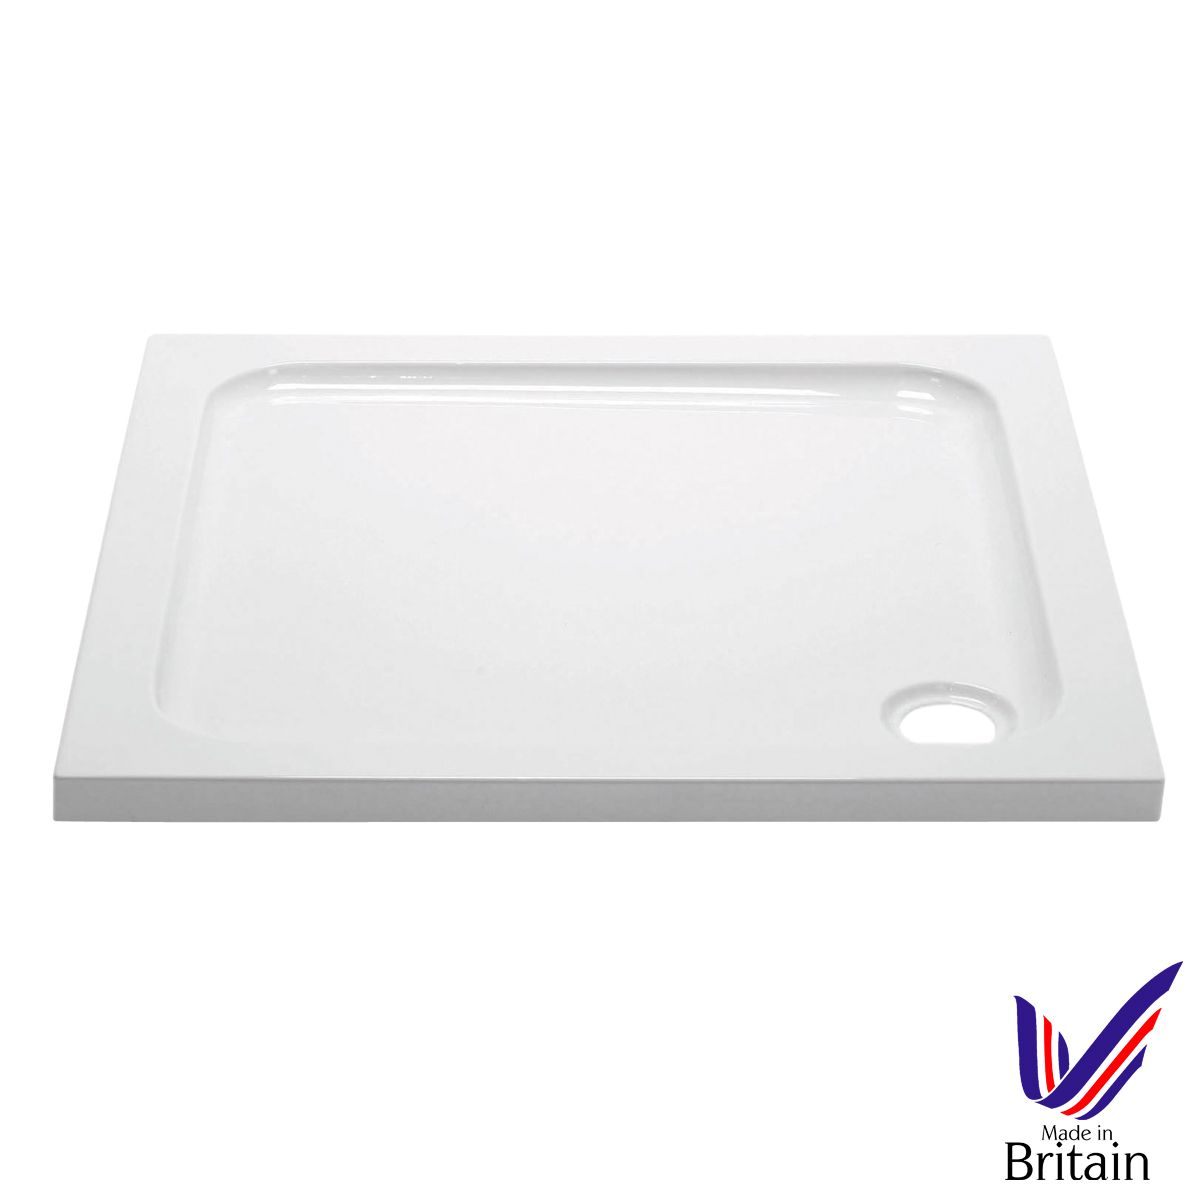 April Square 900 x 900 Shower Tray